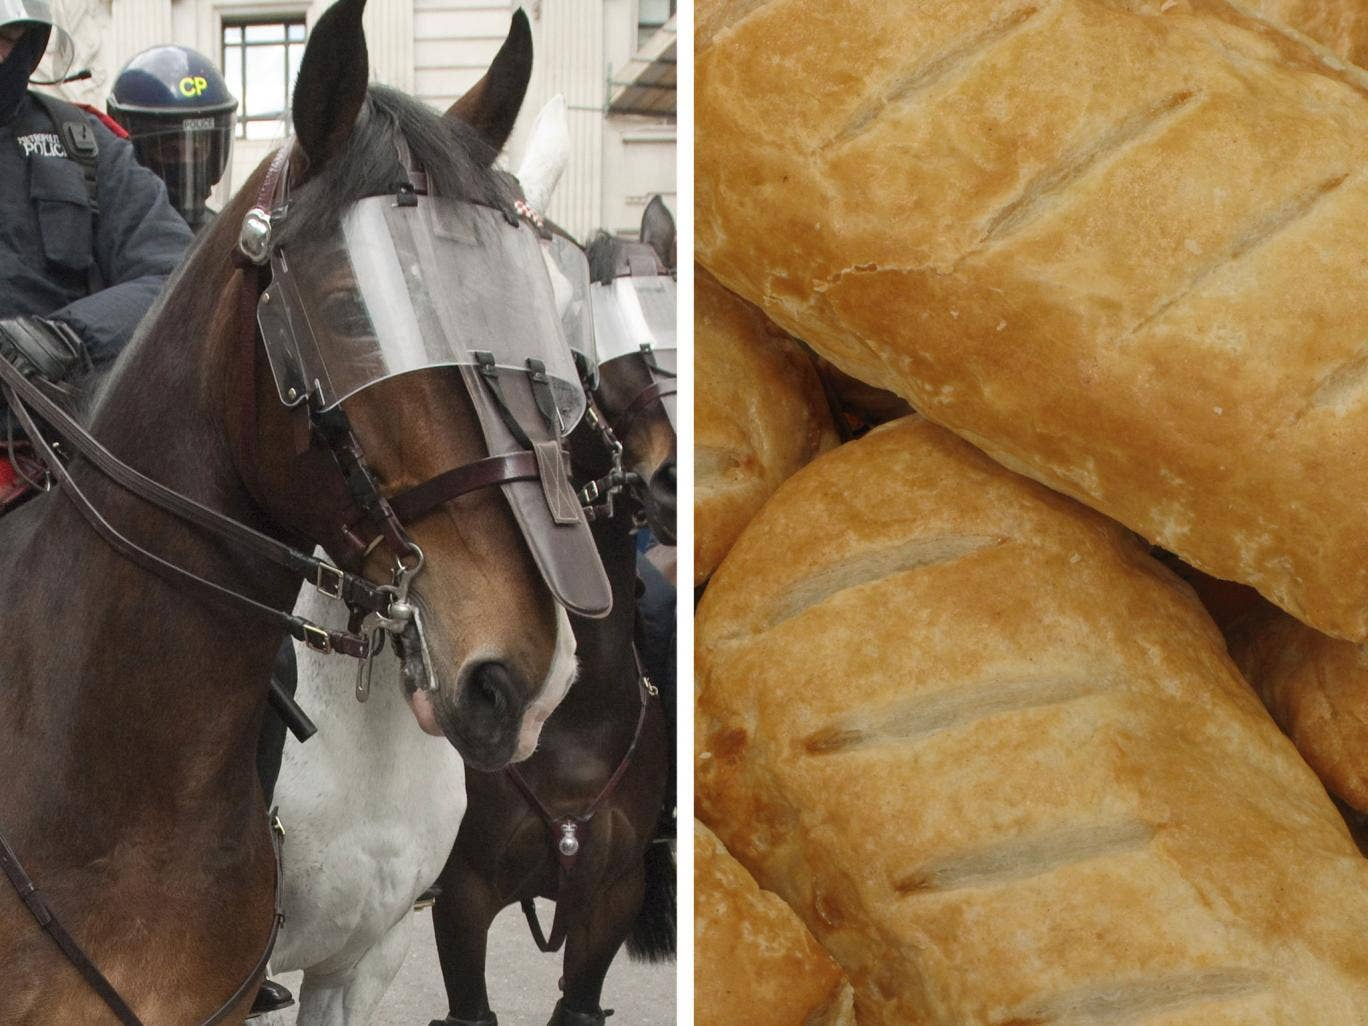 Francis Kelly, was arrested for attempting to share the pastry with the animal because police didn't want the horse to eat it